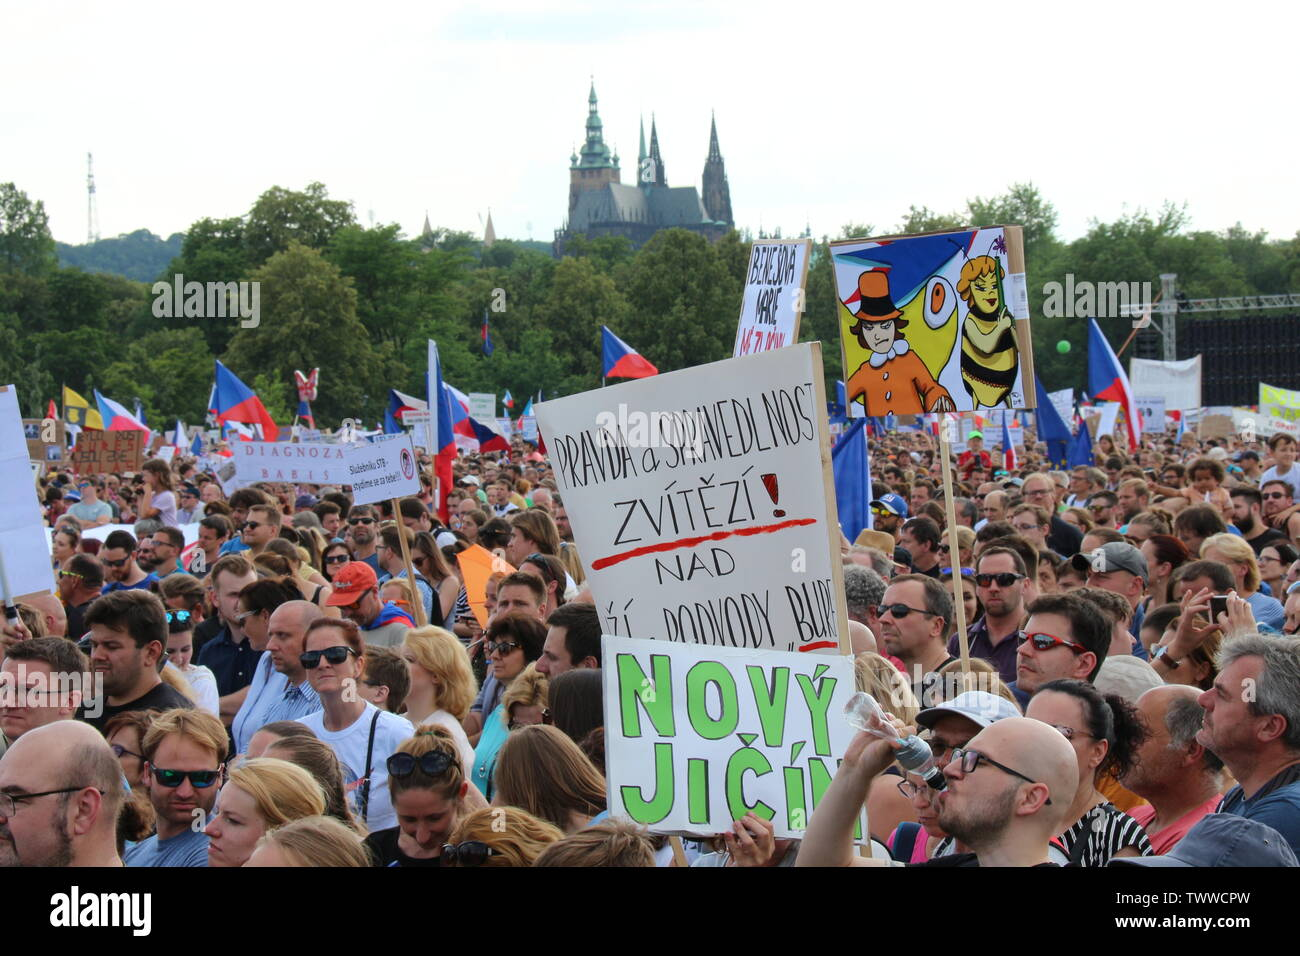 Prague, Czech Republic, 23rd Jun 2019. More than 250,000 demonstrators flooded Letna with billboards requiring the resignation of Andrei Babis. They a - Stock Image